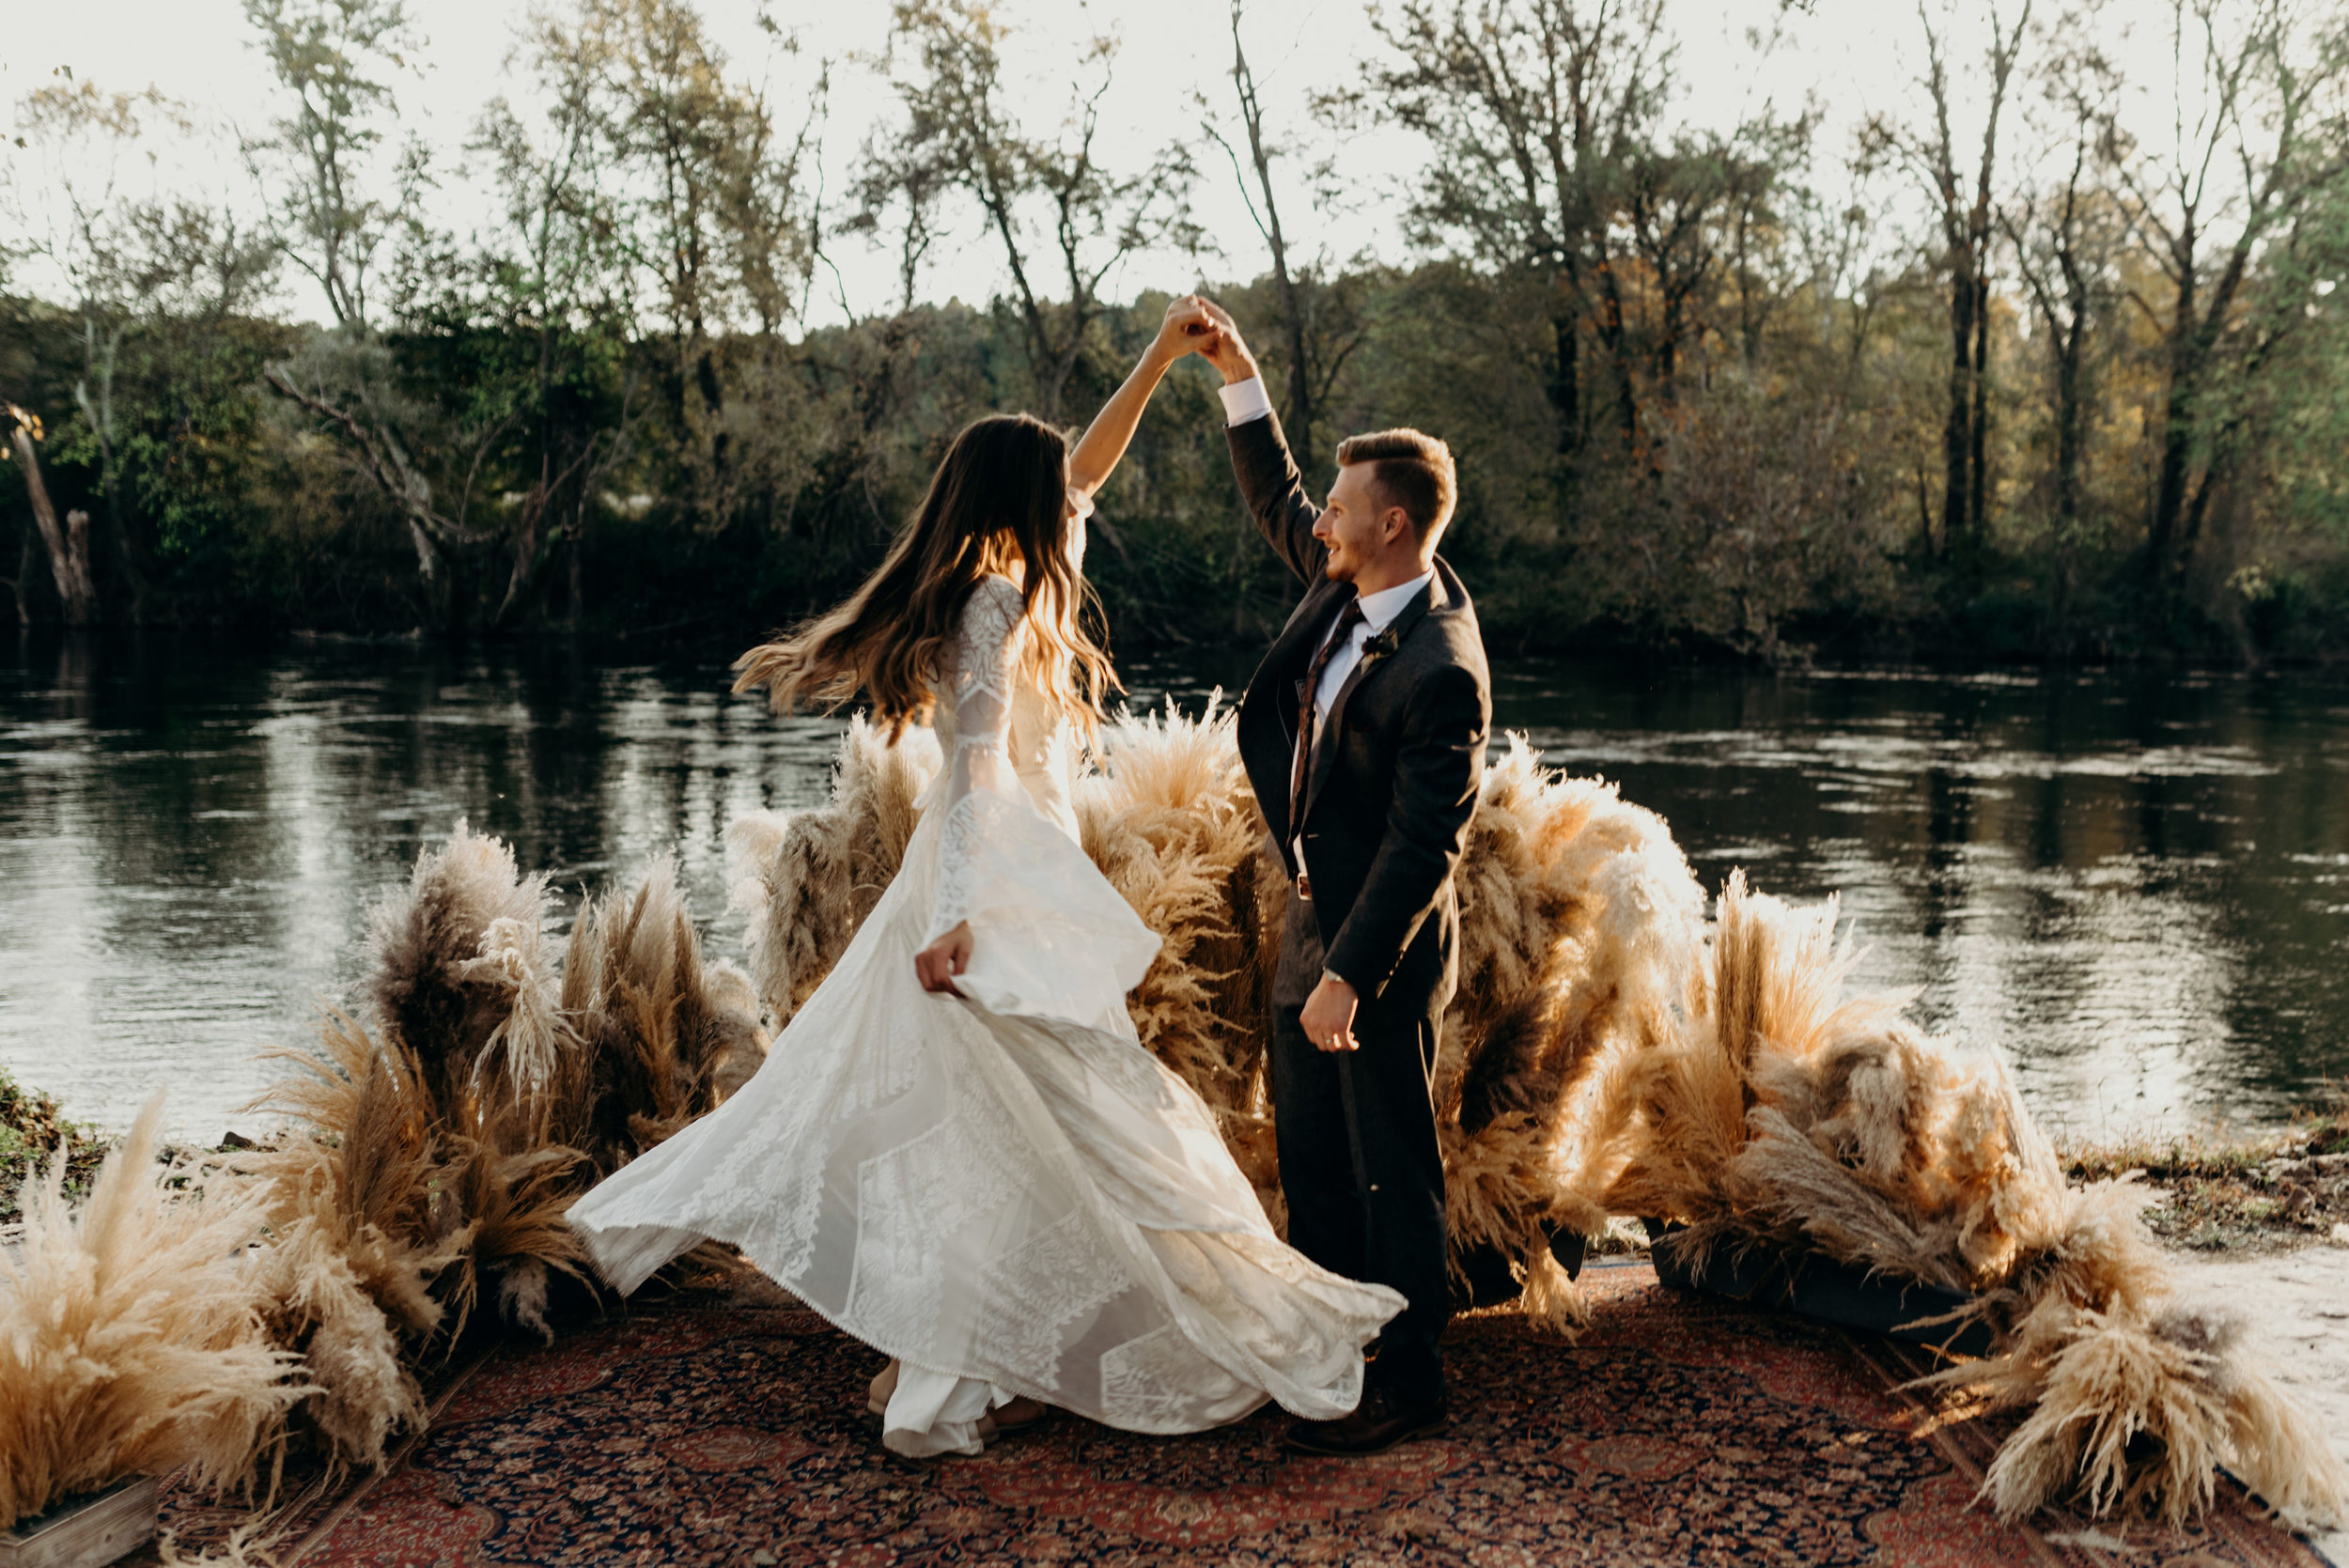 Lauren & Caleb's Boho Wedding at Hiwassee River Weddings